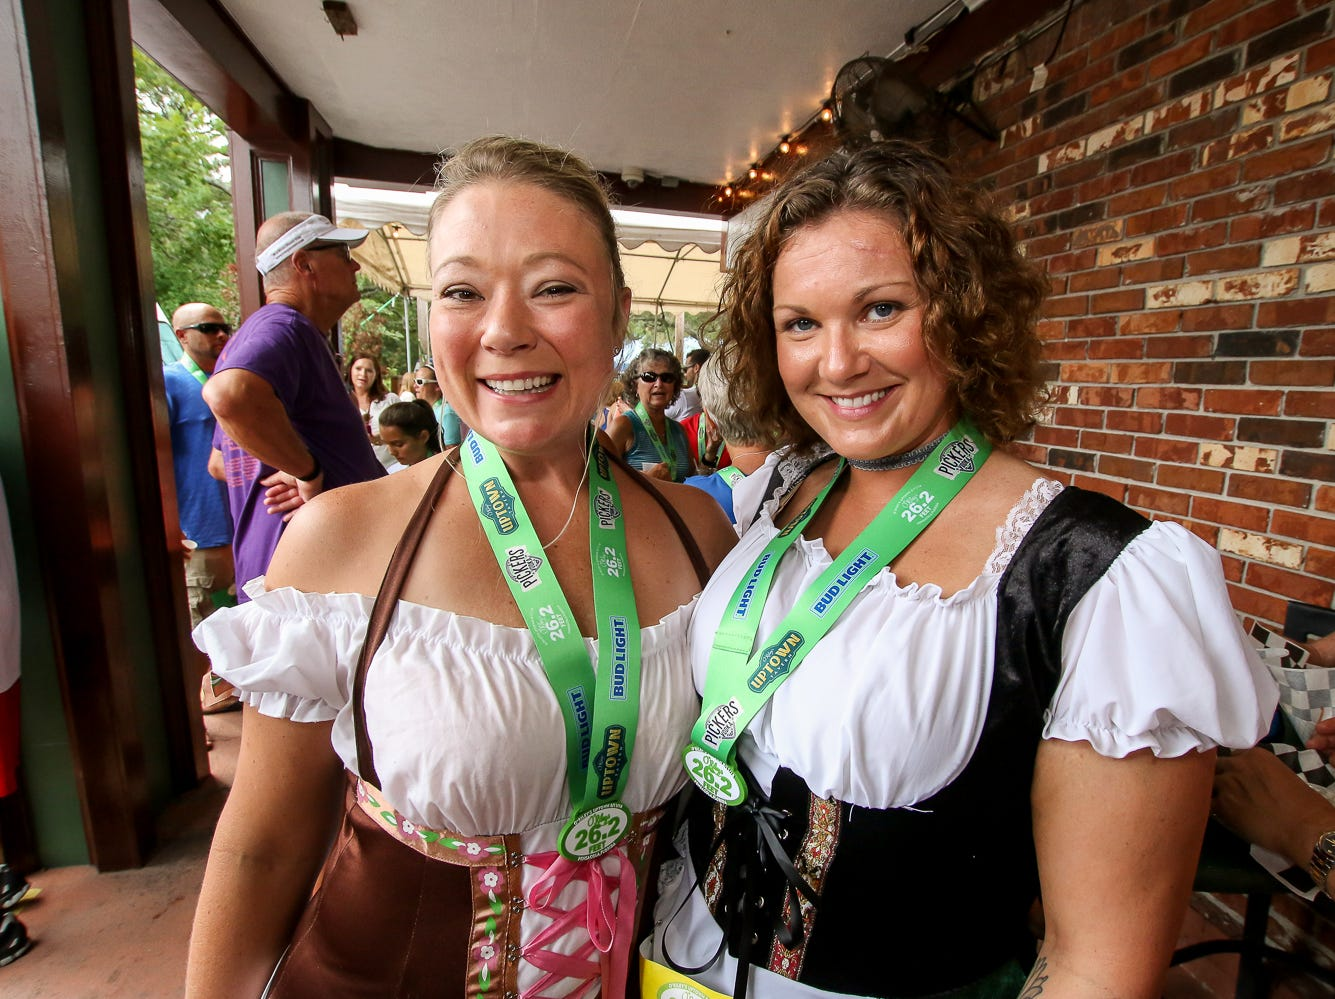 While many people would consider running 26.2 miles a marathon and not a sprint, the O'Riley's 26.2 (feet) is just the opposite. On Saturday, Aug. 11, 2018, O'Riley's Uptown Tavern and Run Pensacola played host to those who wanted to run a shorter, more jocular race that featured playing flip cup at the starting line, along with having some of the regular race amenities like race shirts, a water station at about the halfway point – a full 13 feet from the starting line – medals for the finishers, on-course photographers, and the customary post-race fruit and beer.